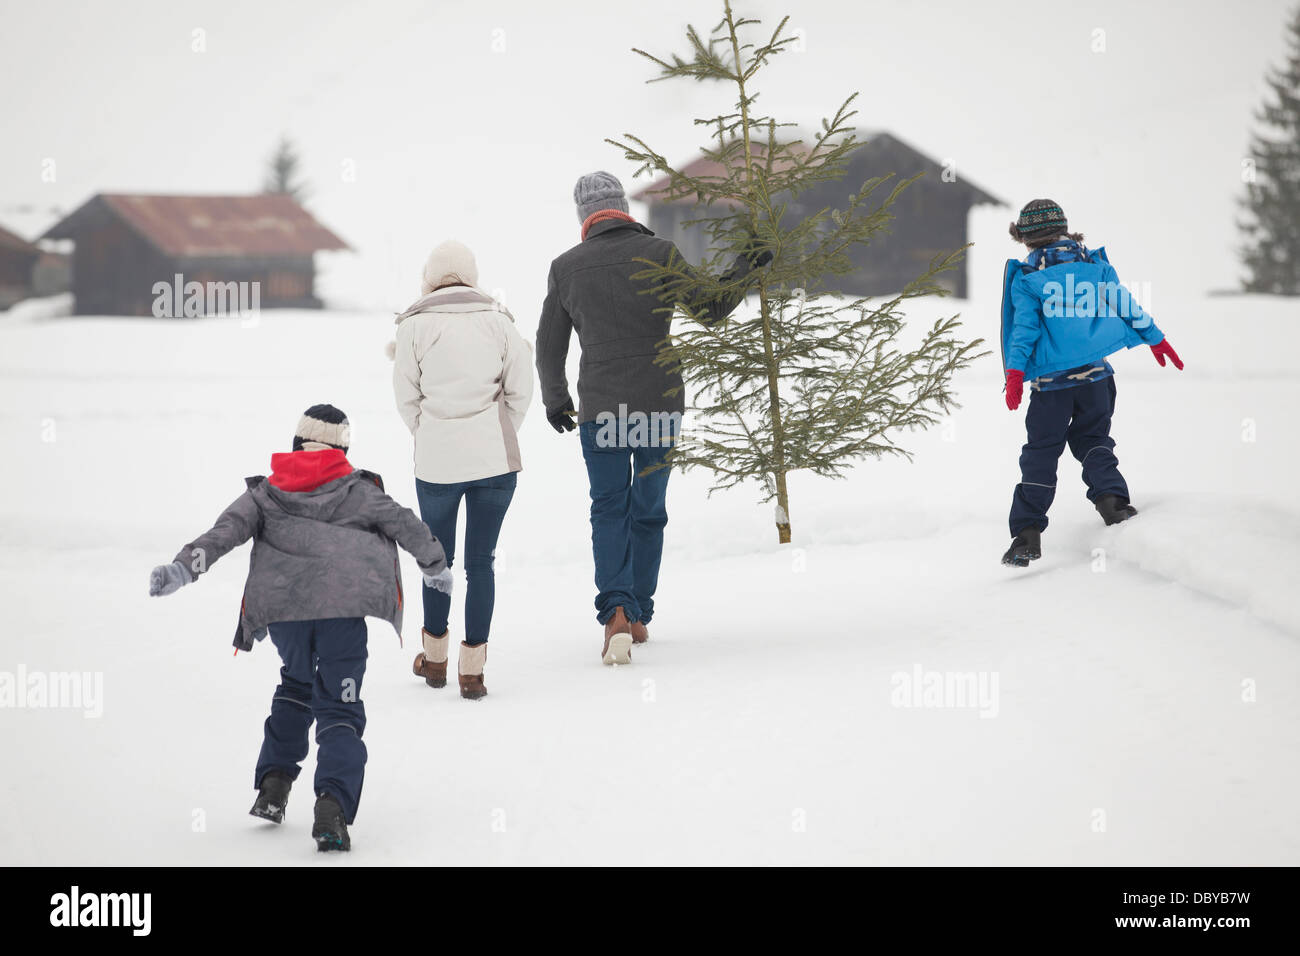 Family carrying fresh Christmas tree in snowy field - Stock Image